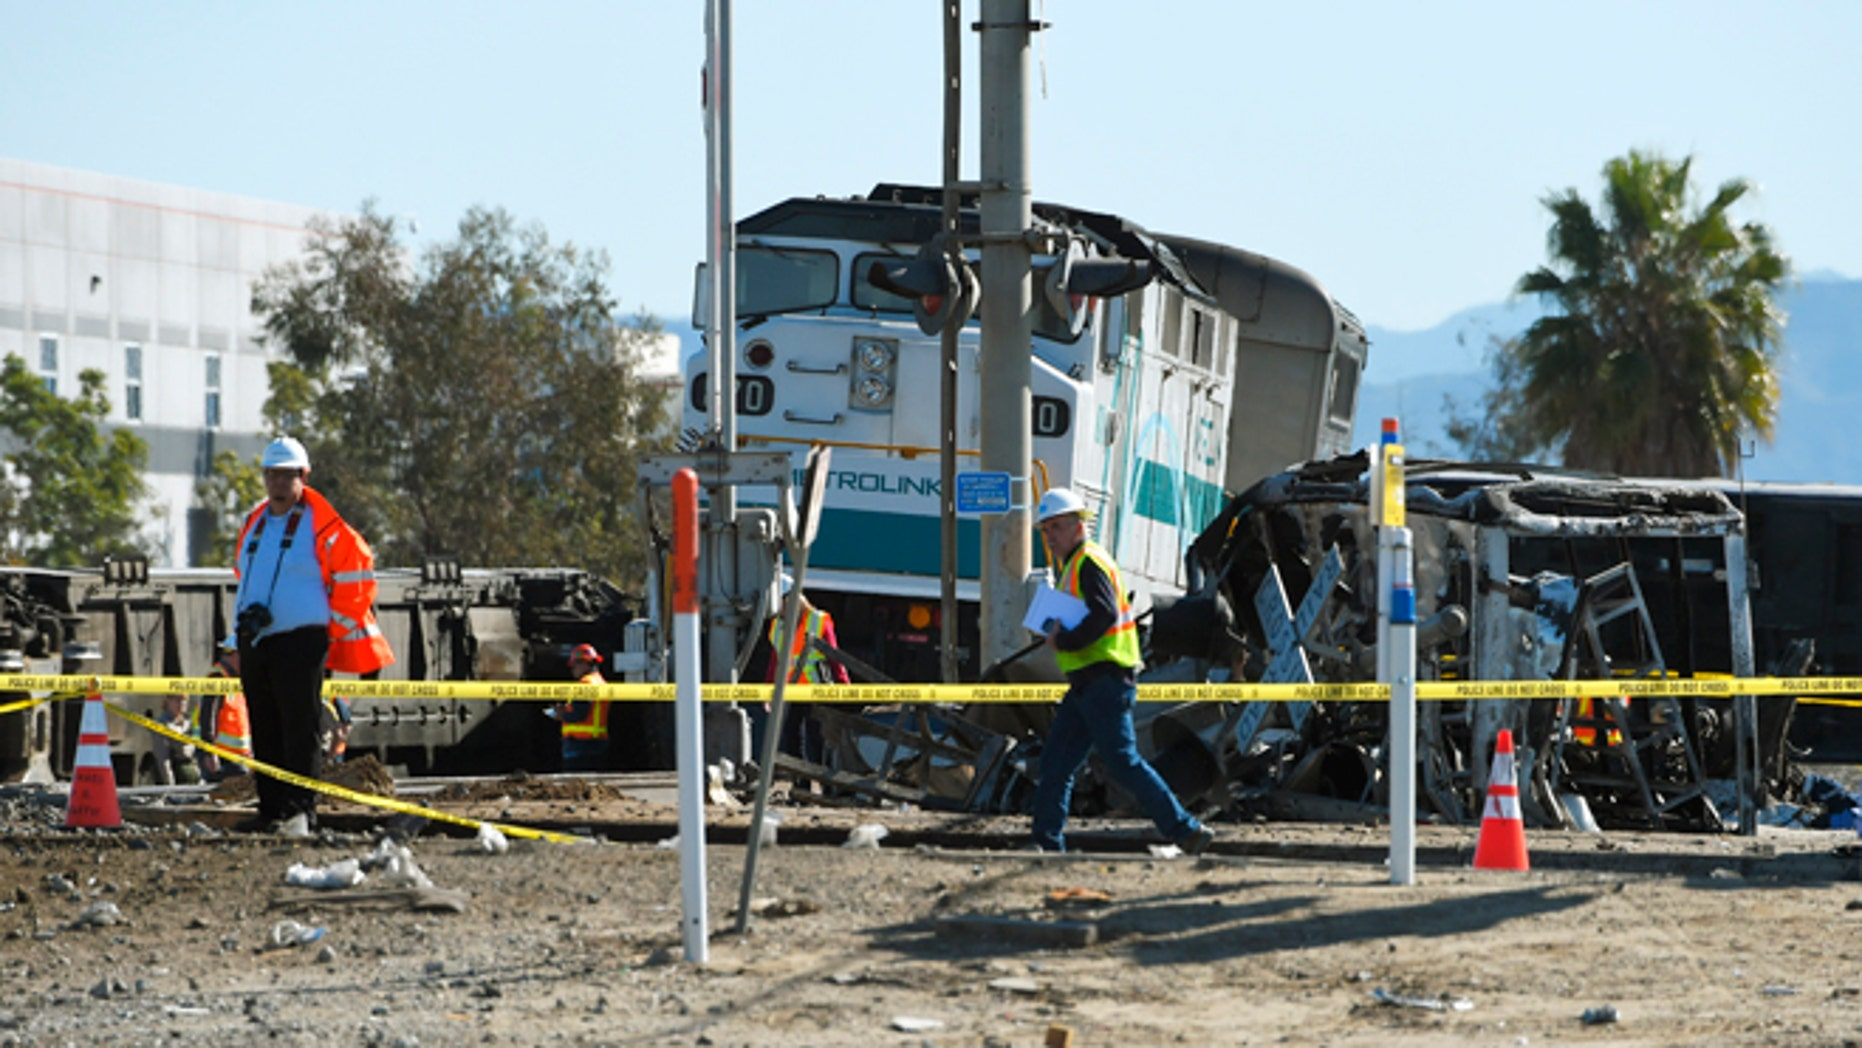 Workers walk near a Metrolink train engine from a train that hit a truck and then derailed Tuesday, Feb. 24, 2015, in Oxnard, Calif. Three cars of the Metrolink train tumbled onto their sides, injuring dozens of people in the town 65 miles northwest of Los Angeles. (AP Photo/Mark J. Terrill)